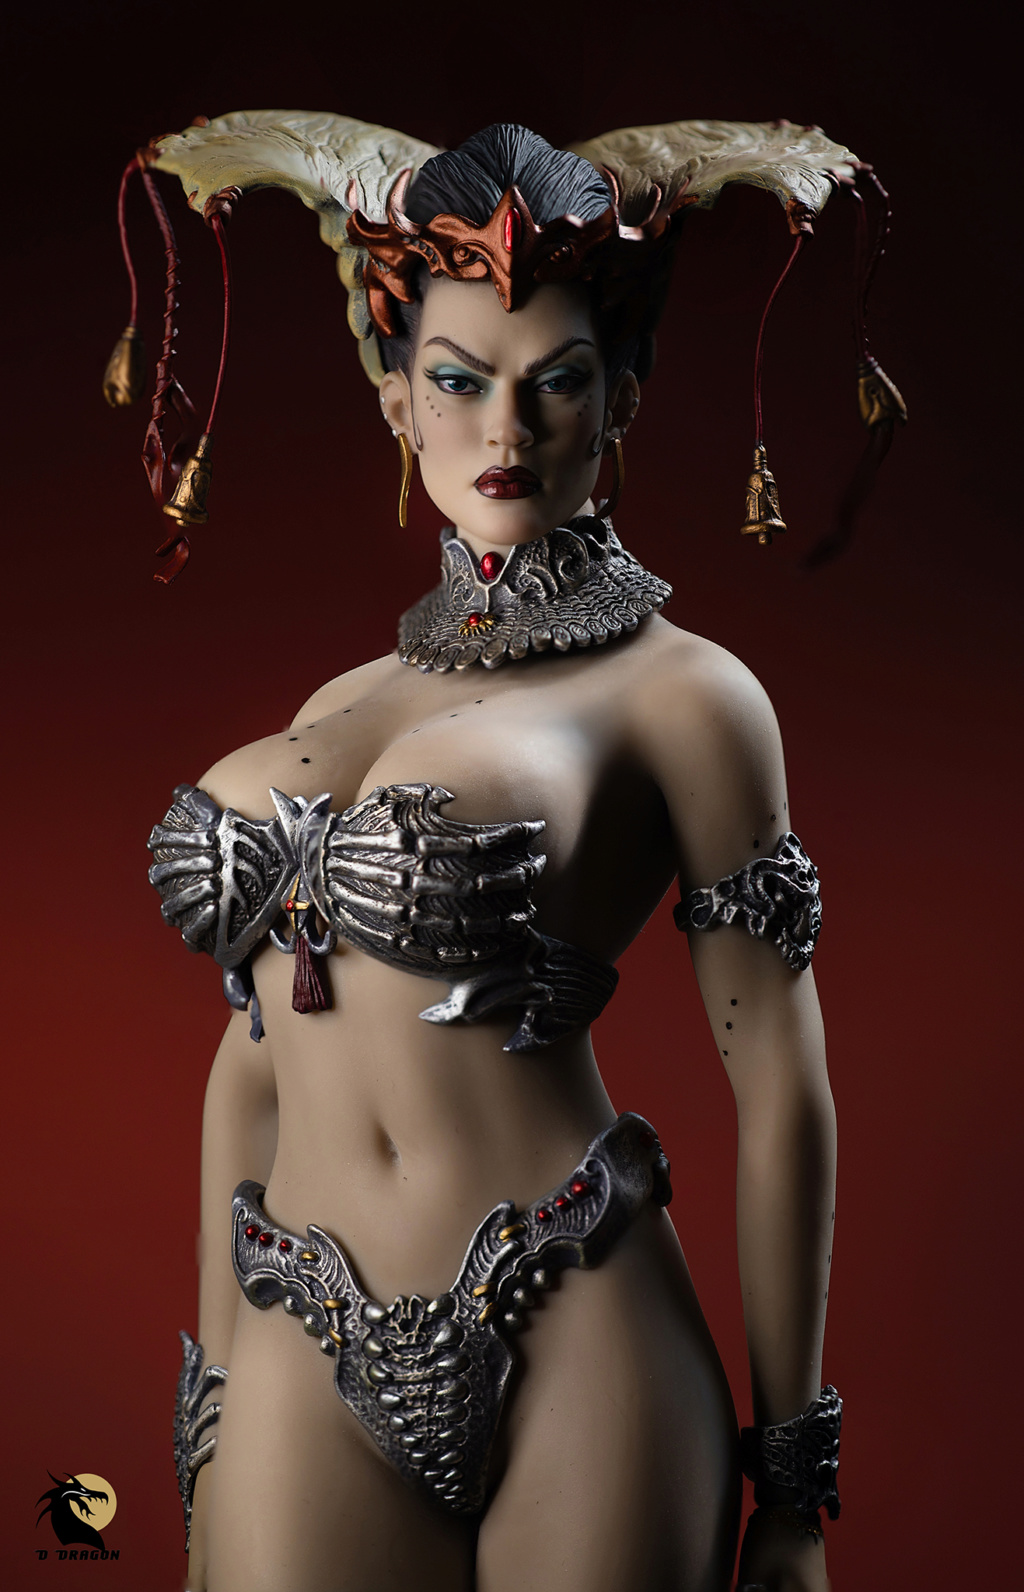 tbleague - NEW PRODUCT: Tbleague x SIDESHOW New: 1/6 Court of the Dead: Gethsemoni The Dead Queen action figure (PL2019-147) - Page 2 Gethse16